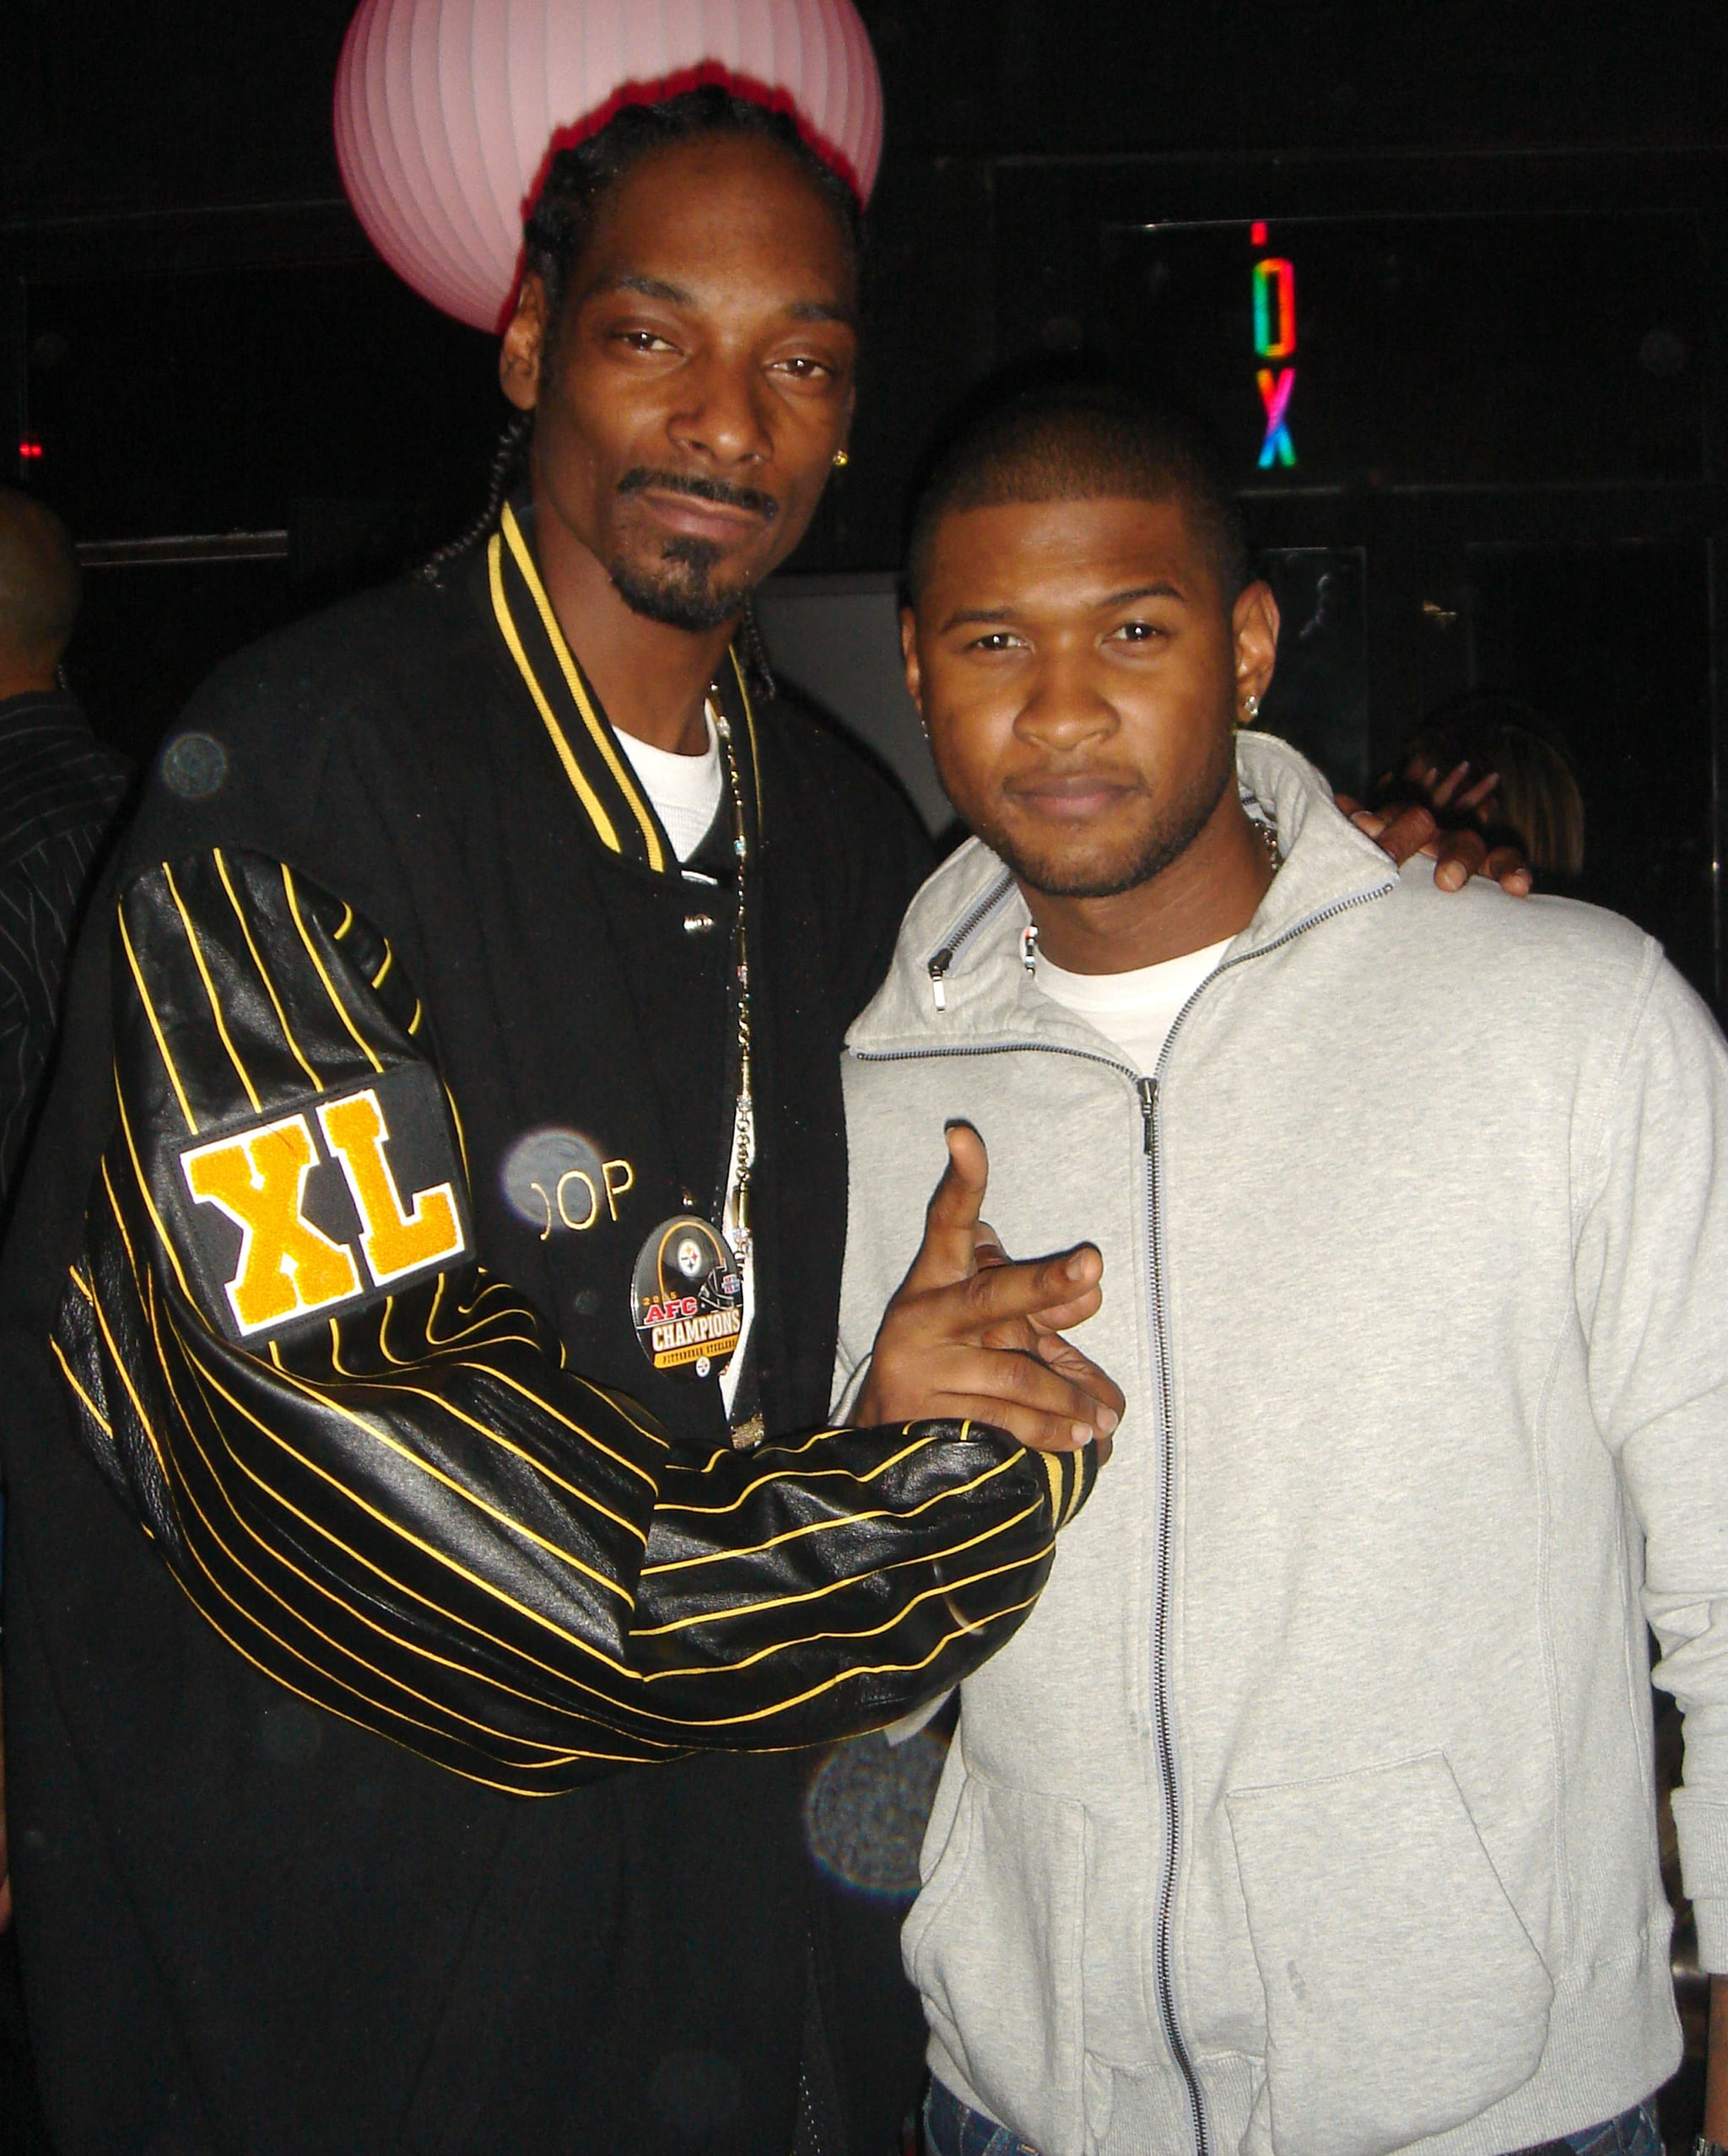 Snoop Dogg and Usher posed for pictures at the ESPN Late Night party in 2006.